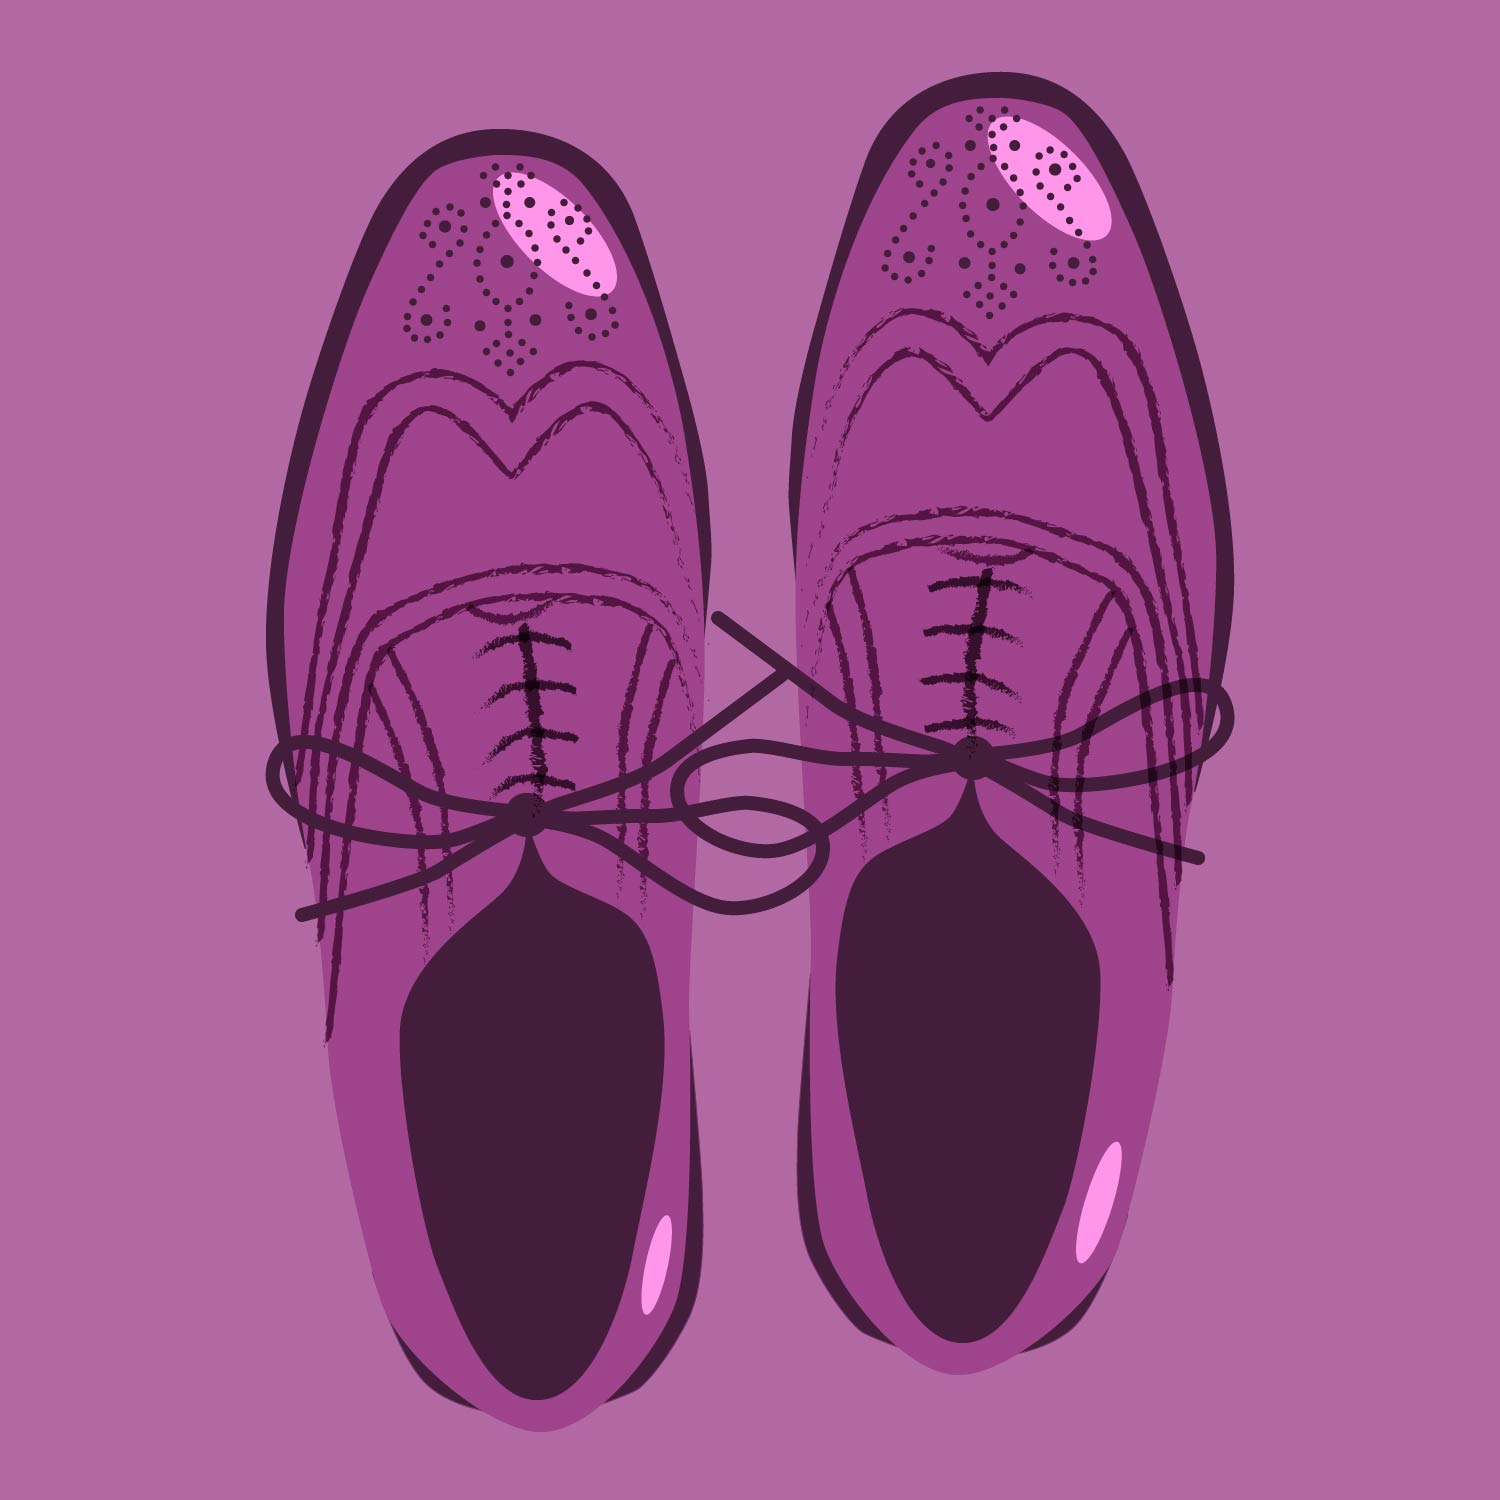 remember, change is personal & emotional - Remember what it was like when you last went through a big change? Your employees are no different. Put yourself in their shoes. How would you feel if you were going through that change?